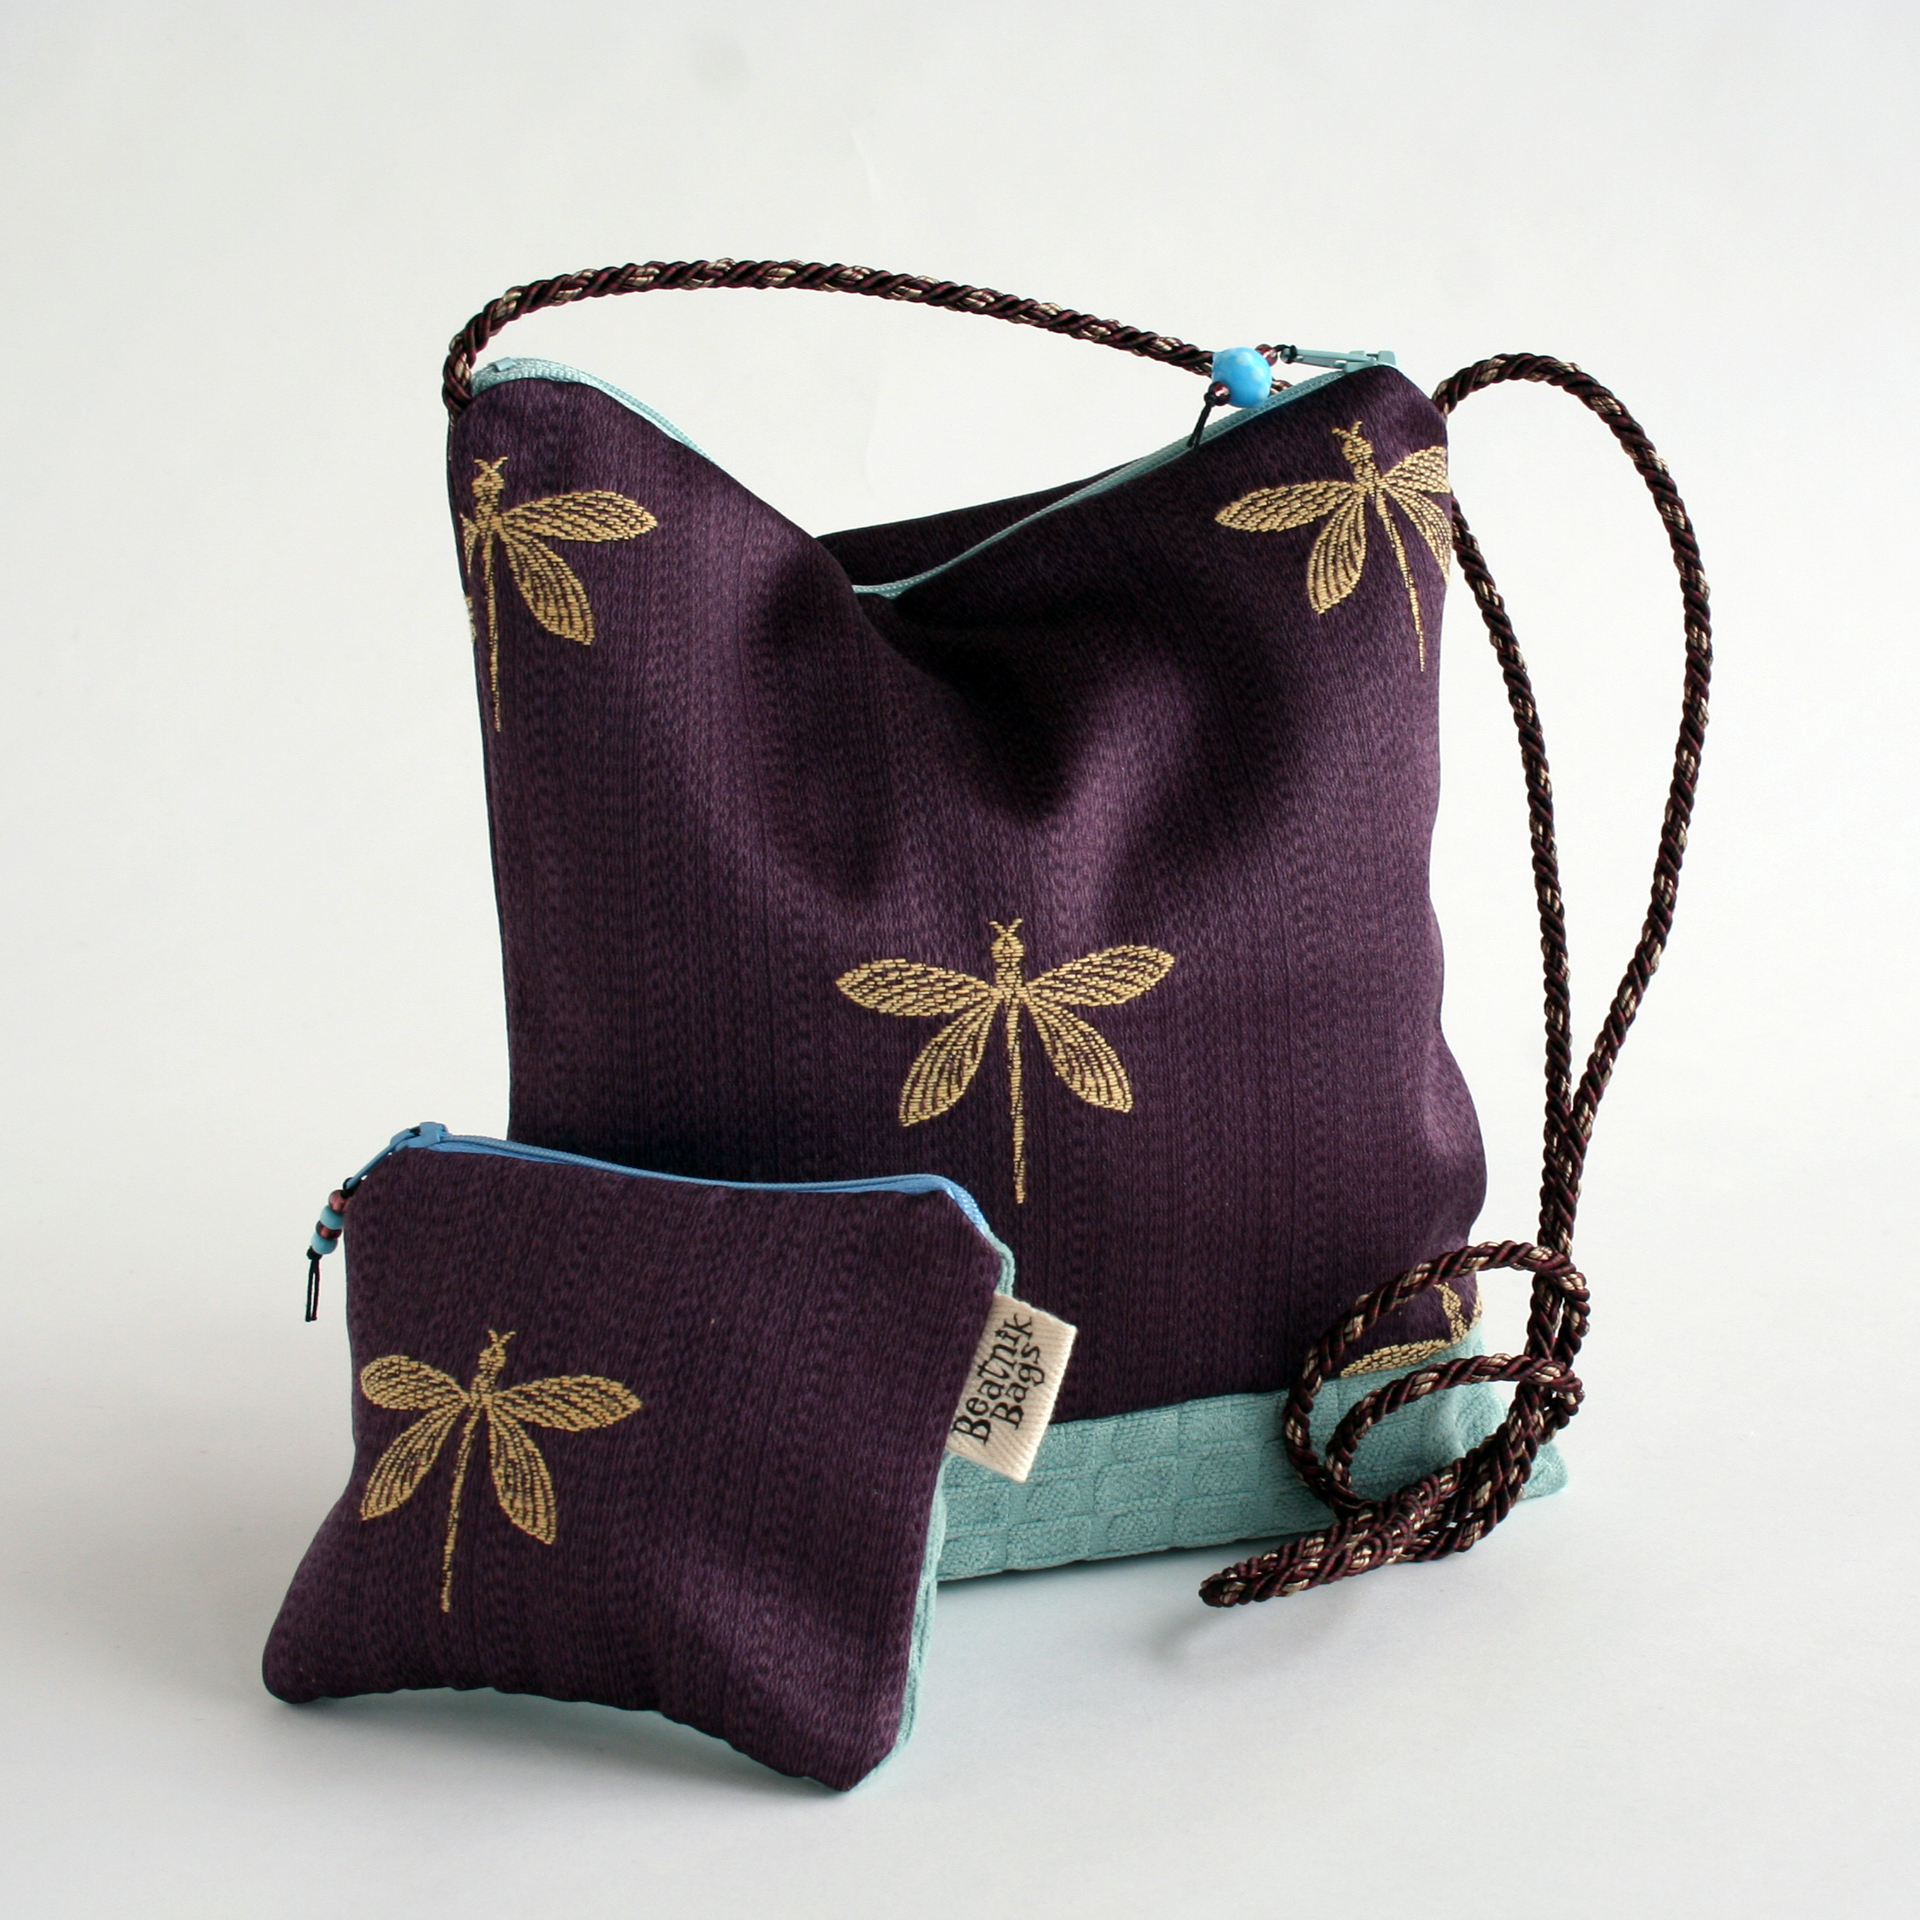 Square bag and coin purse